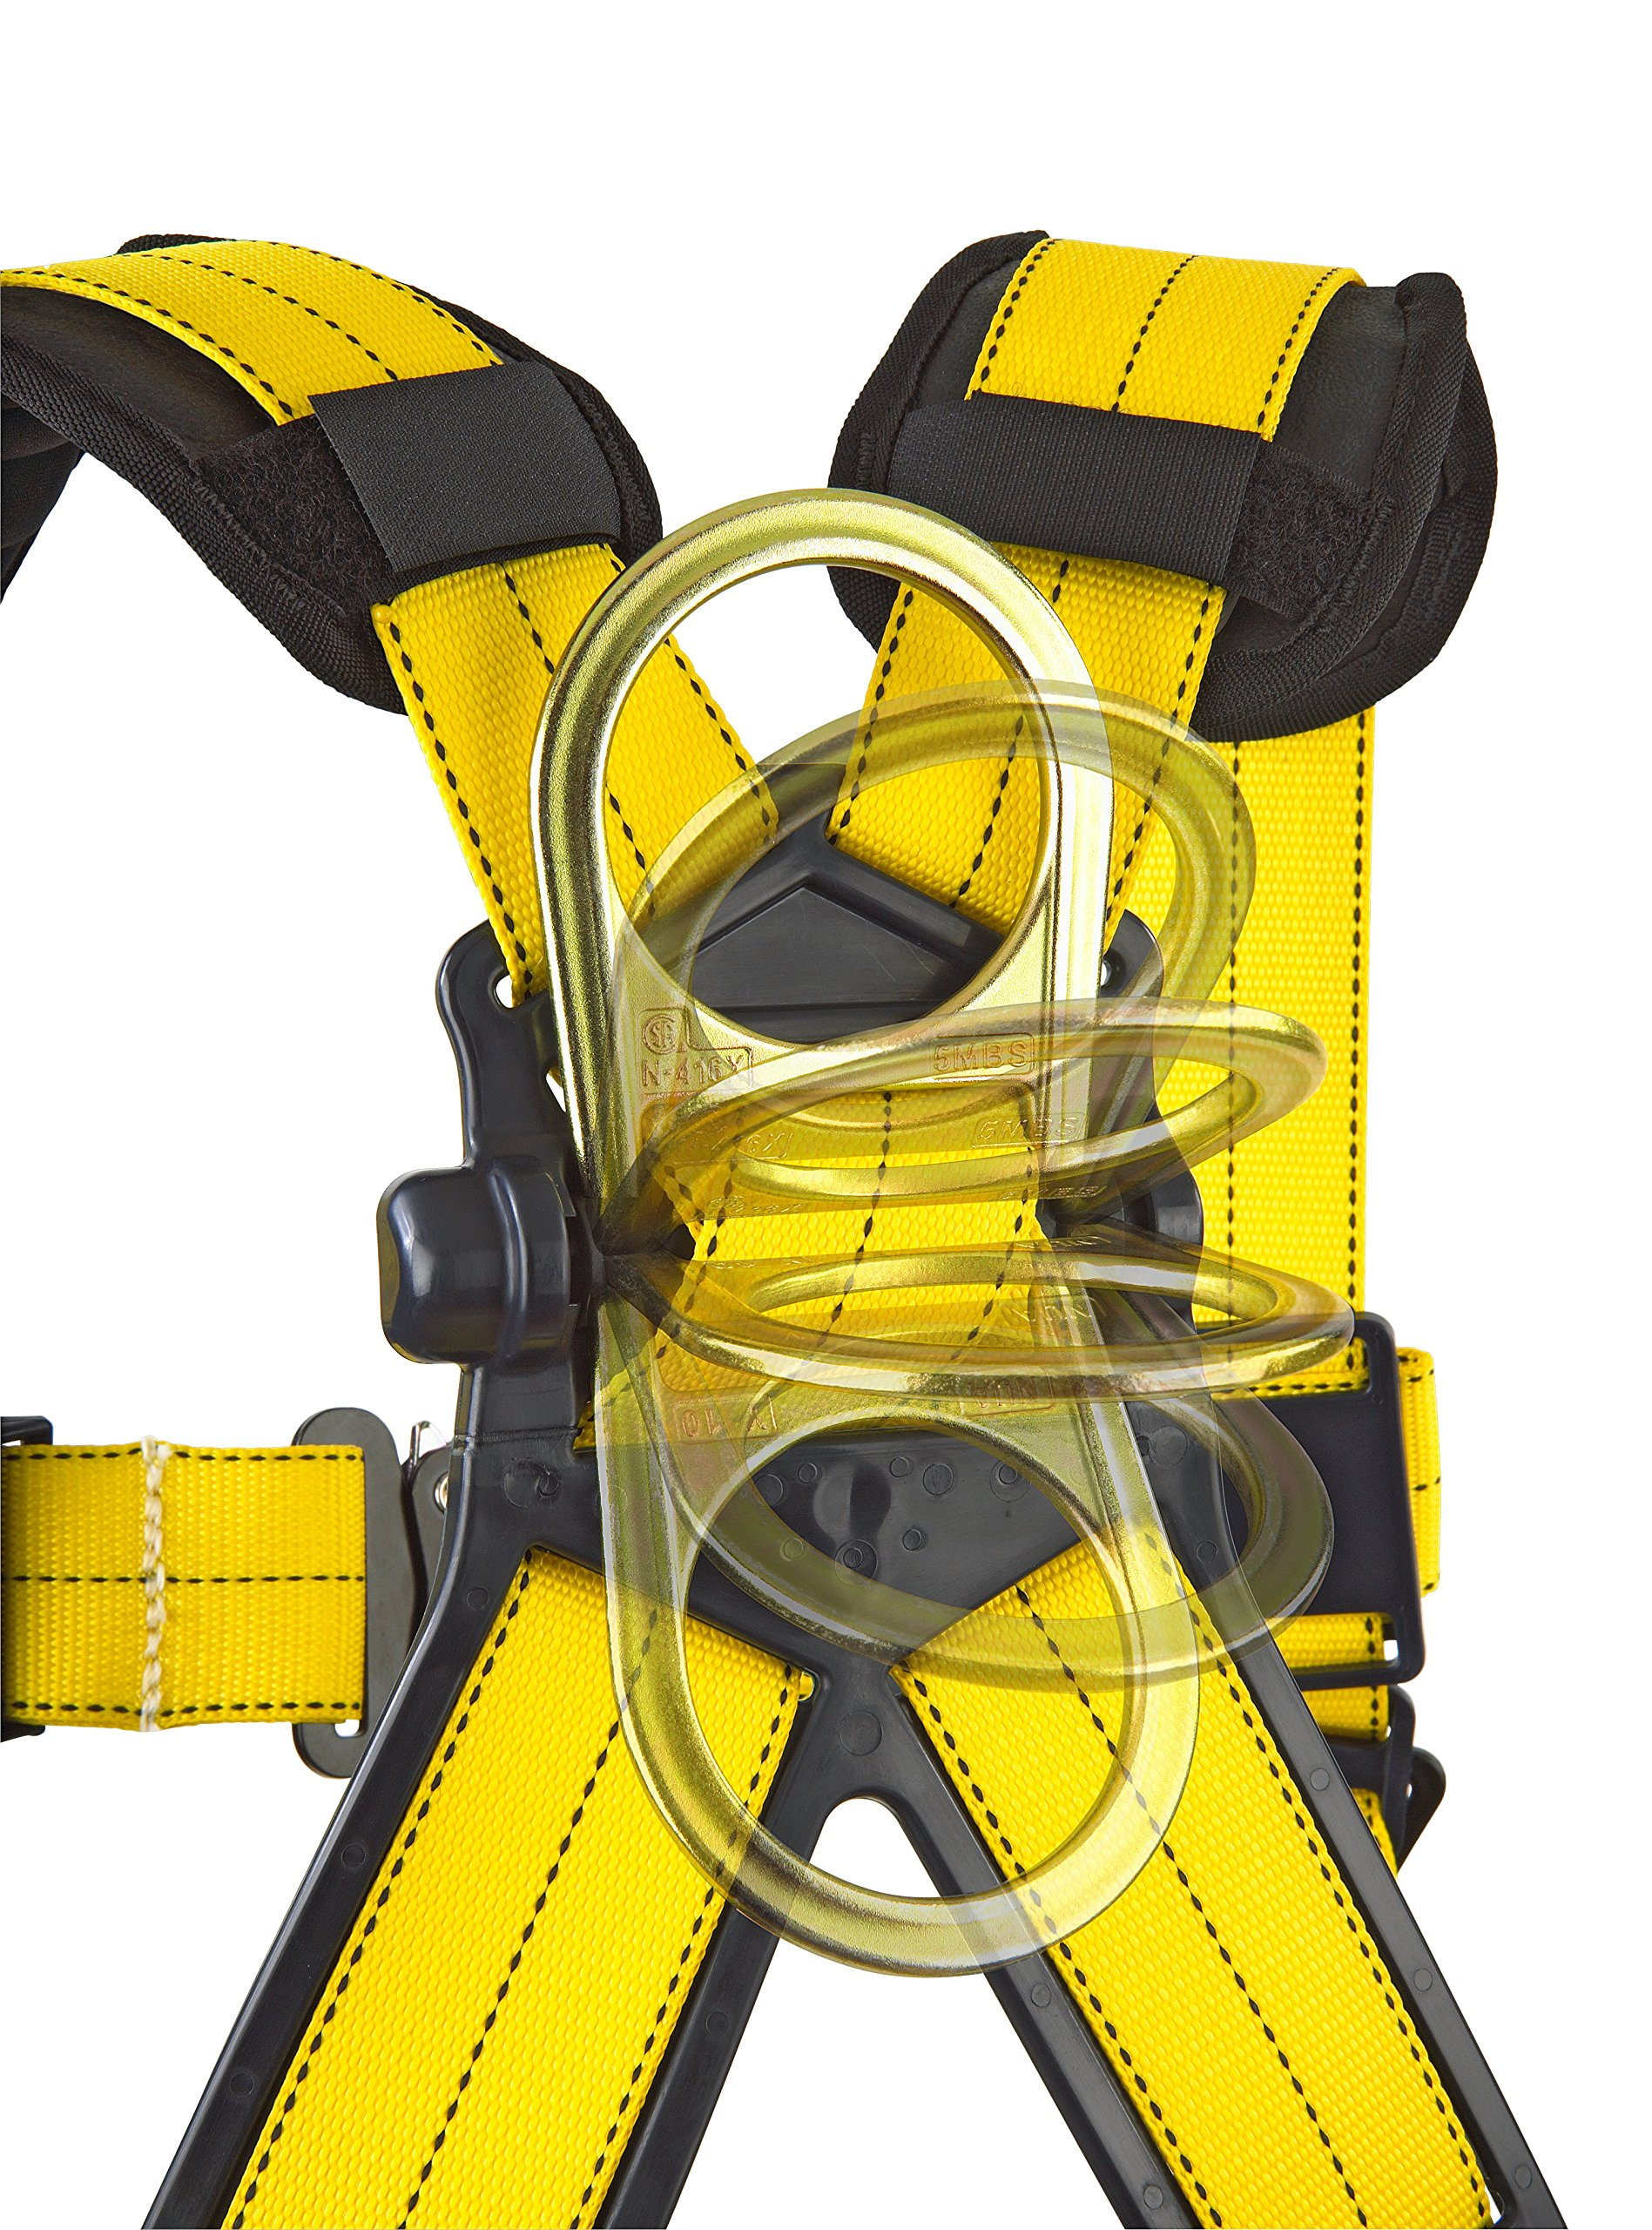 3M DBI-SALA Delta 1101654 Construction Harness, Back/Side D-Rings, Belt w/Sewn-In Back & Shoulder Pads, Tongue Buckle Leg Straps, Medium, Navy/Yellow by 3M Fall Protection Business (Image #6)